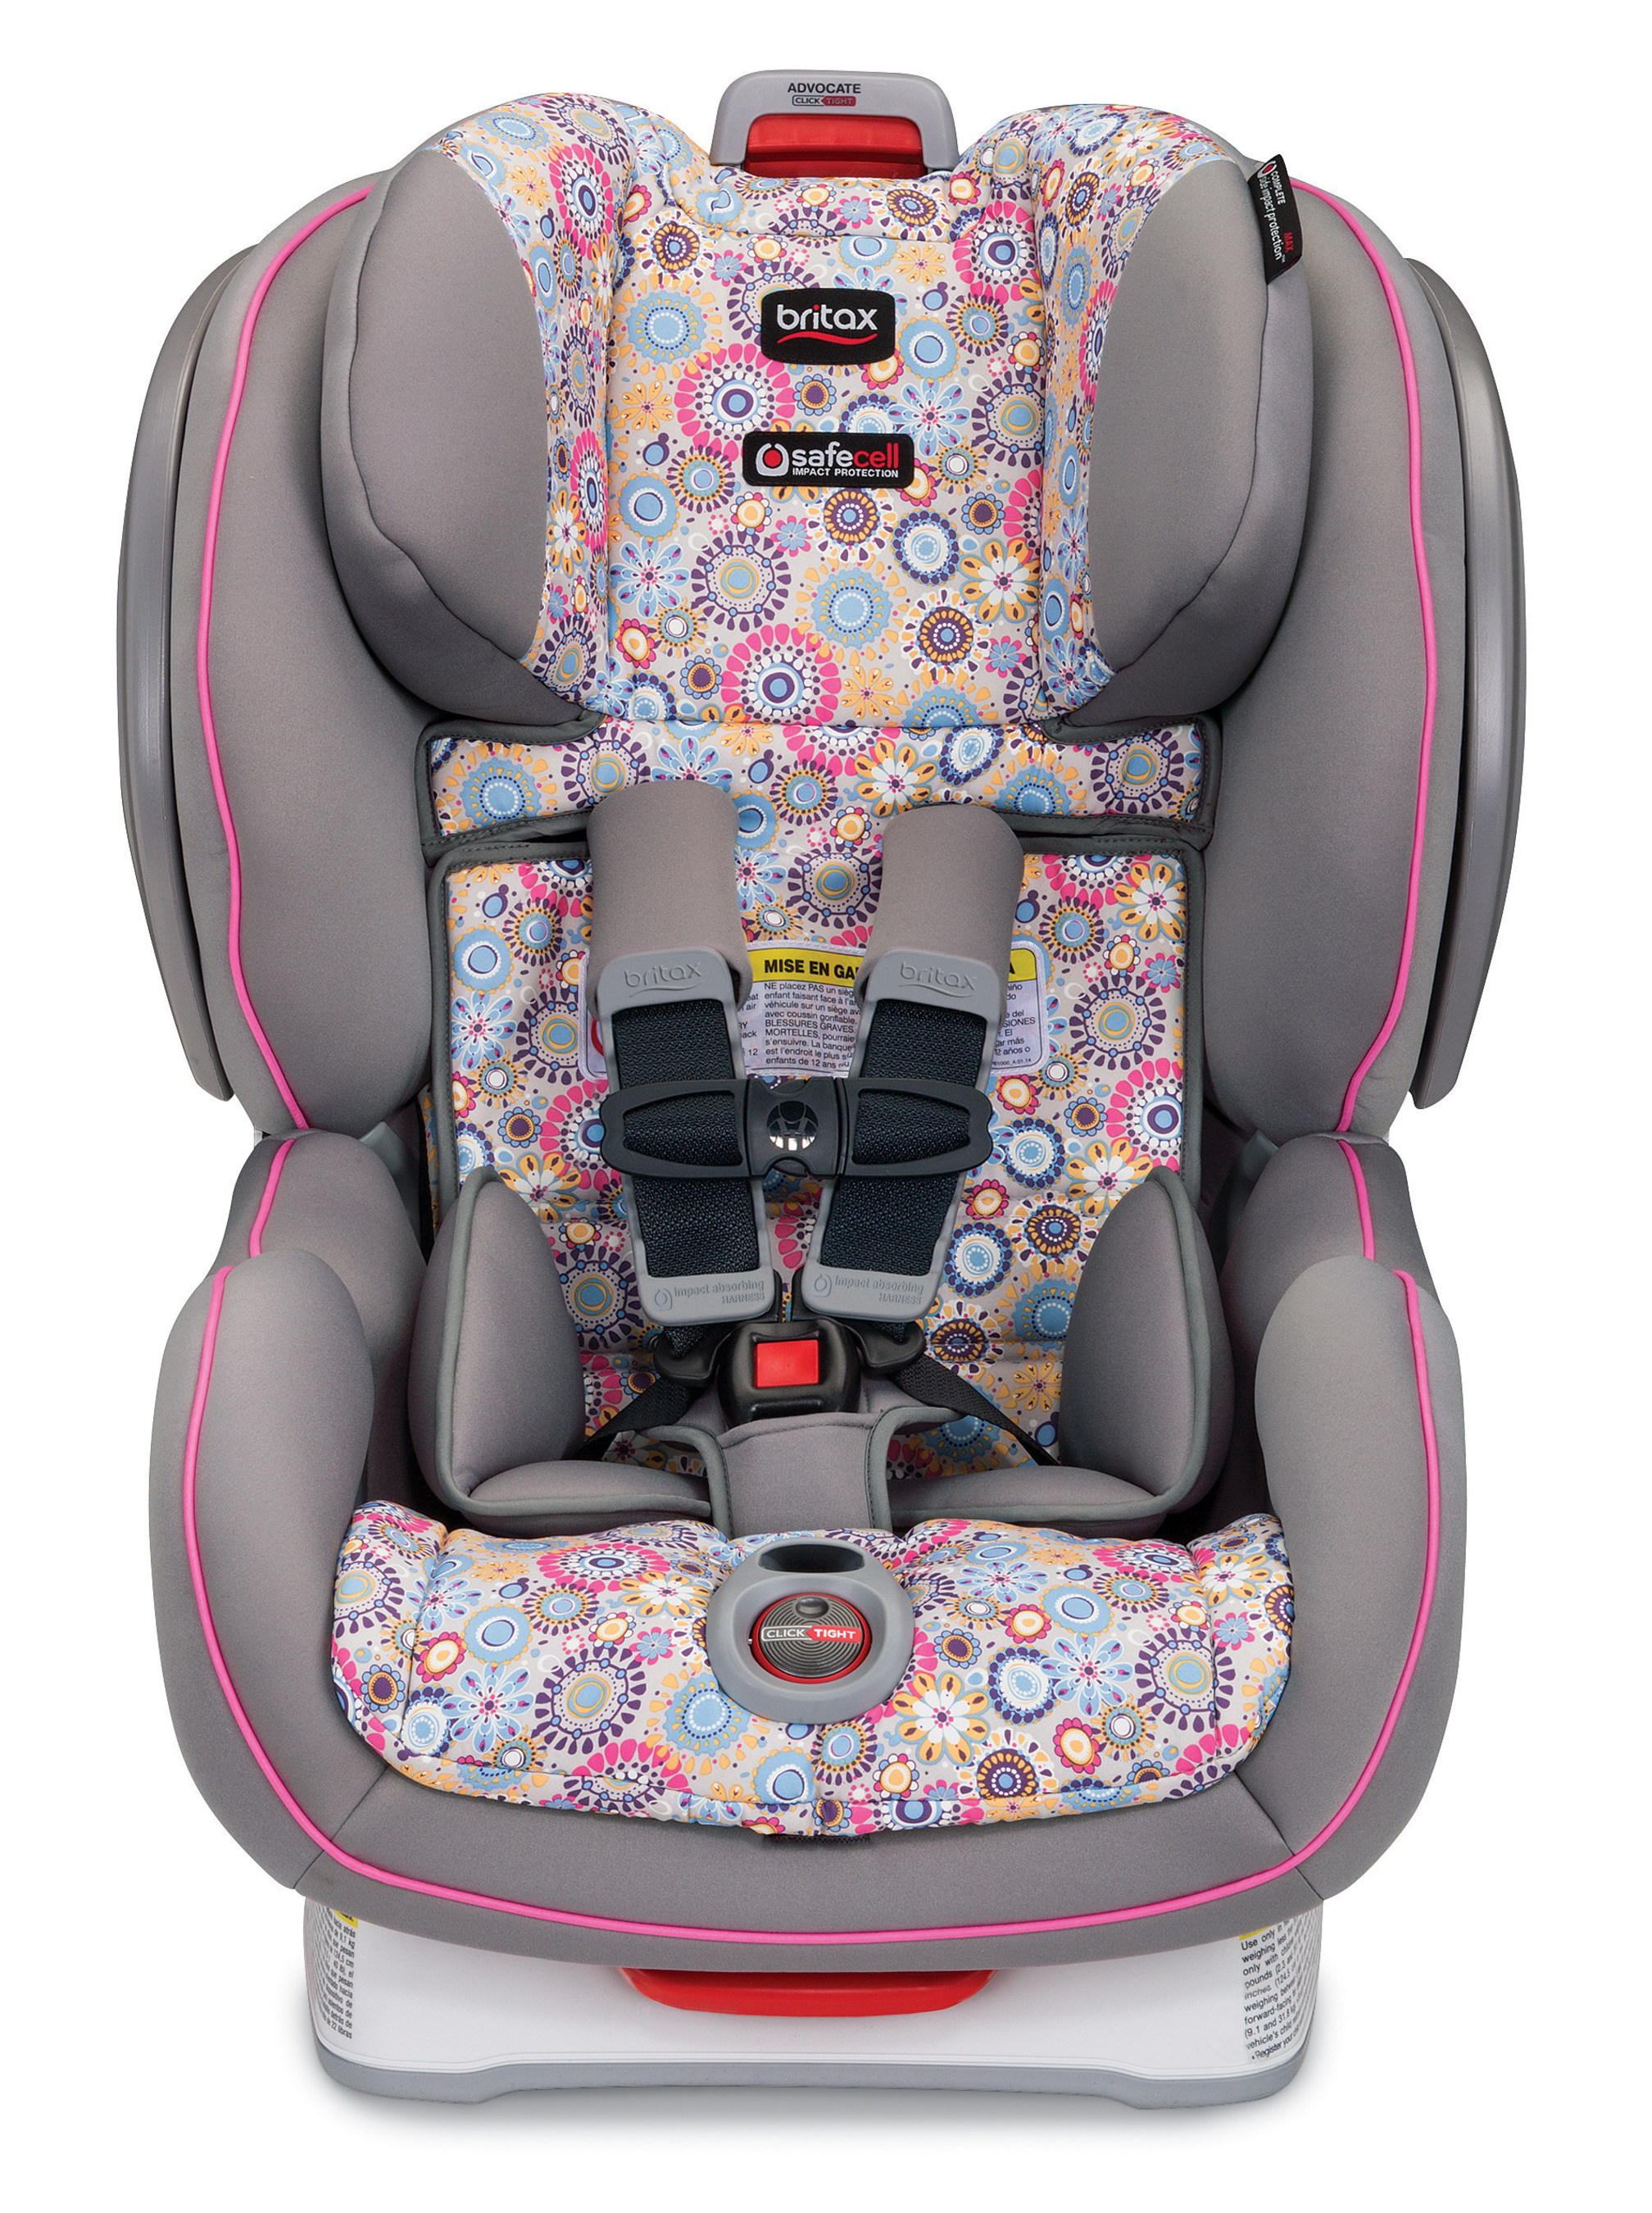 As the leader in mobile safety for more than 70 years, Britax now brings its game-changing ClickTight(TM) Installation System to its most popular and versatile convertible car seats, including the Britax Advocate in Limelight. (PRNewsFoto/Britax)